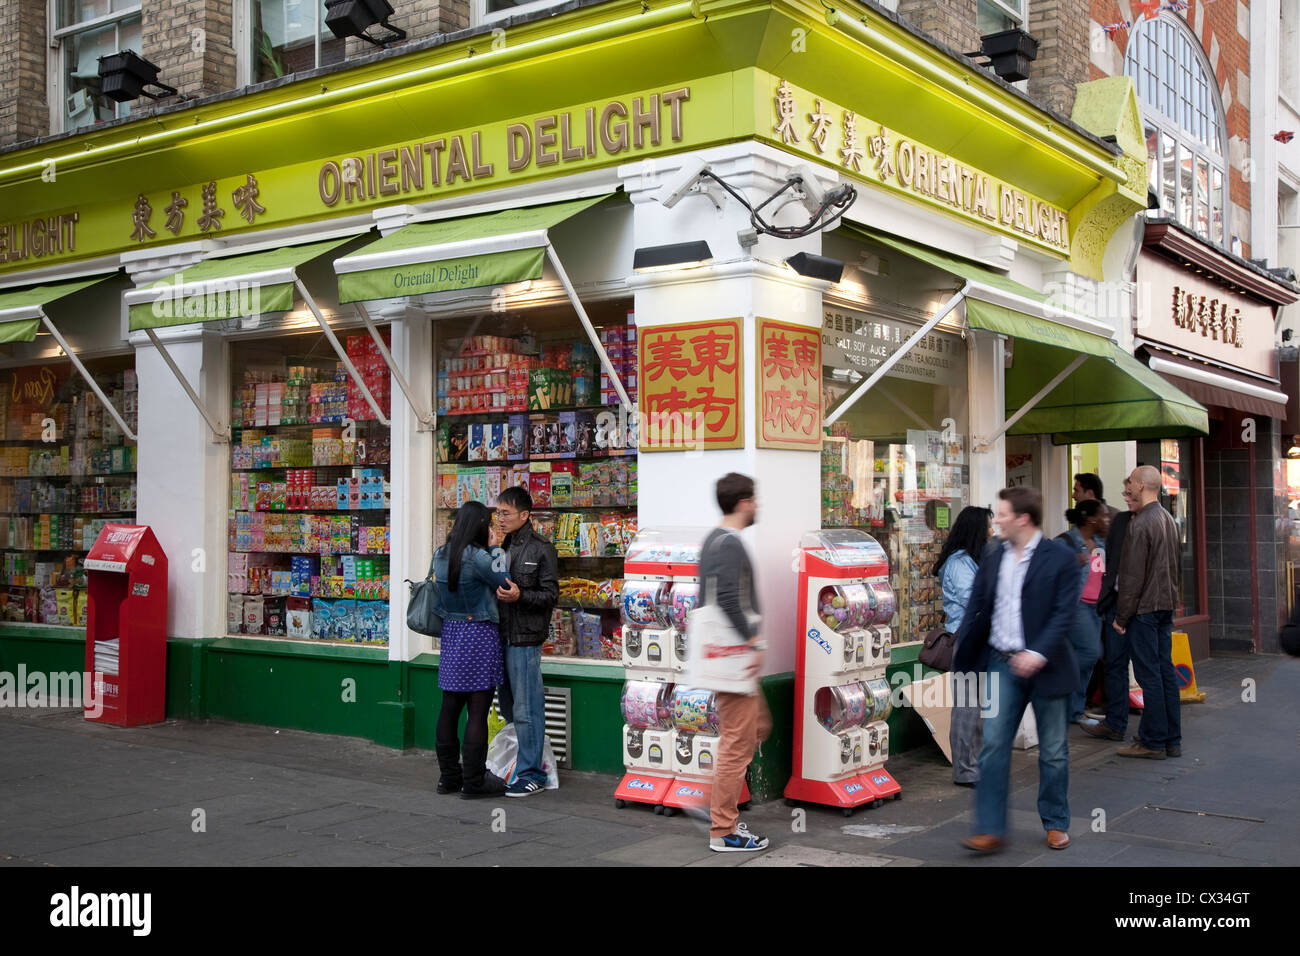 People outside Oriental Delight Shop, Soho, China Town, London, England, UK Stock Photo